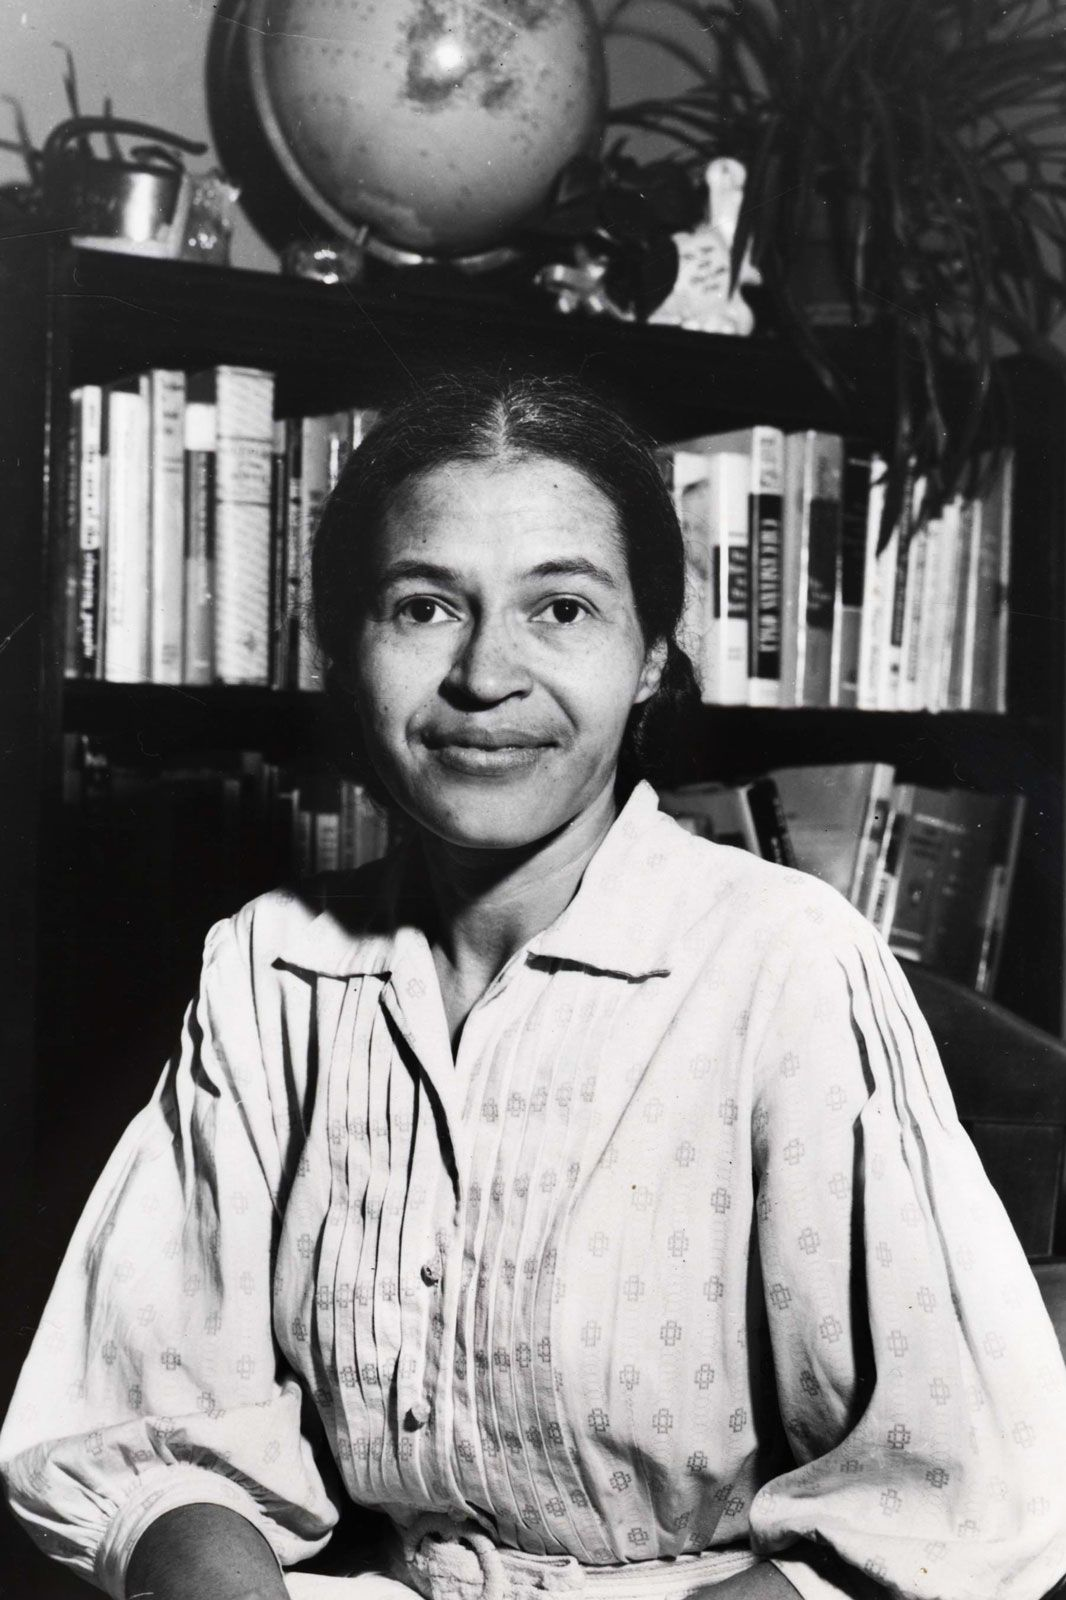 Rosa Parks S Legacy Beyond The Bus Rosa Parks Women In History